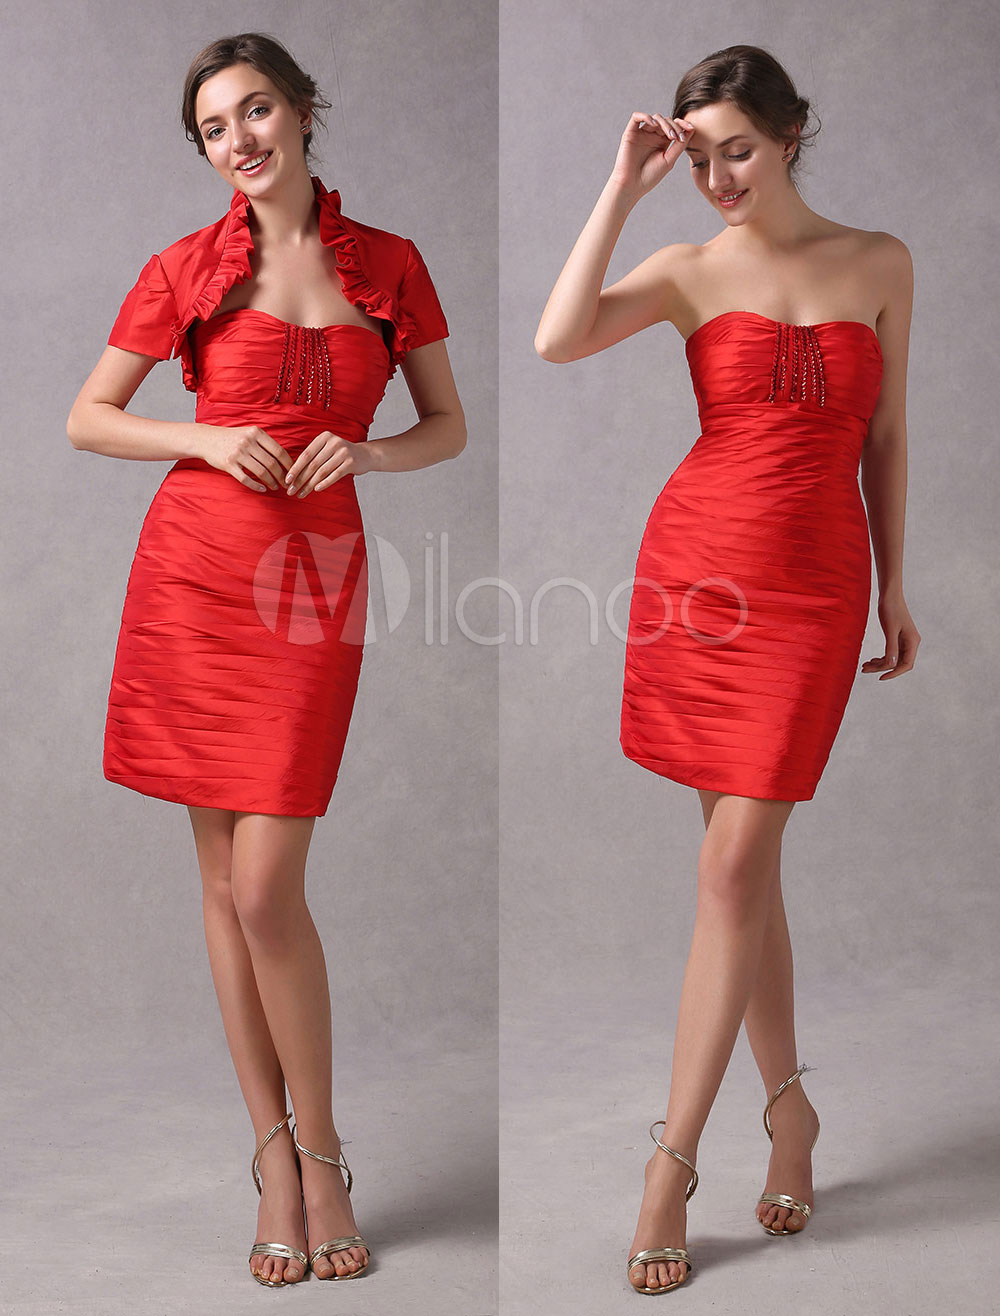 Red Cocktail Dresses Sheath 2 Piece Mother Suits Pleated Sweetheart Neckline Beaded Short Wedding Guest Dress photo